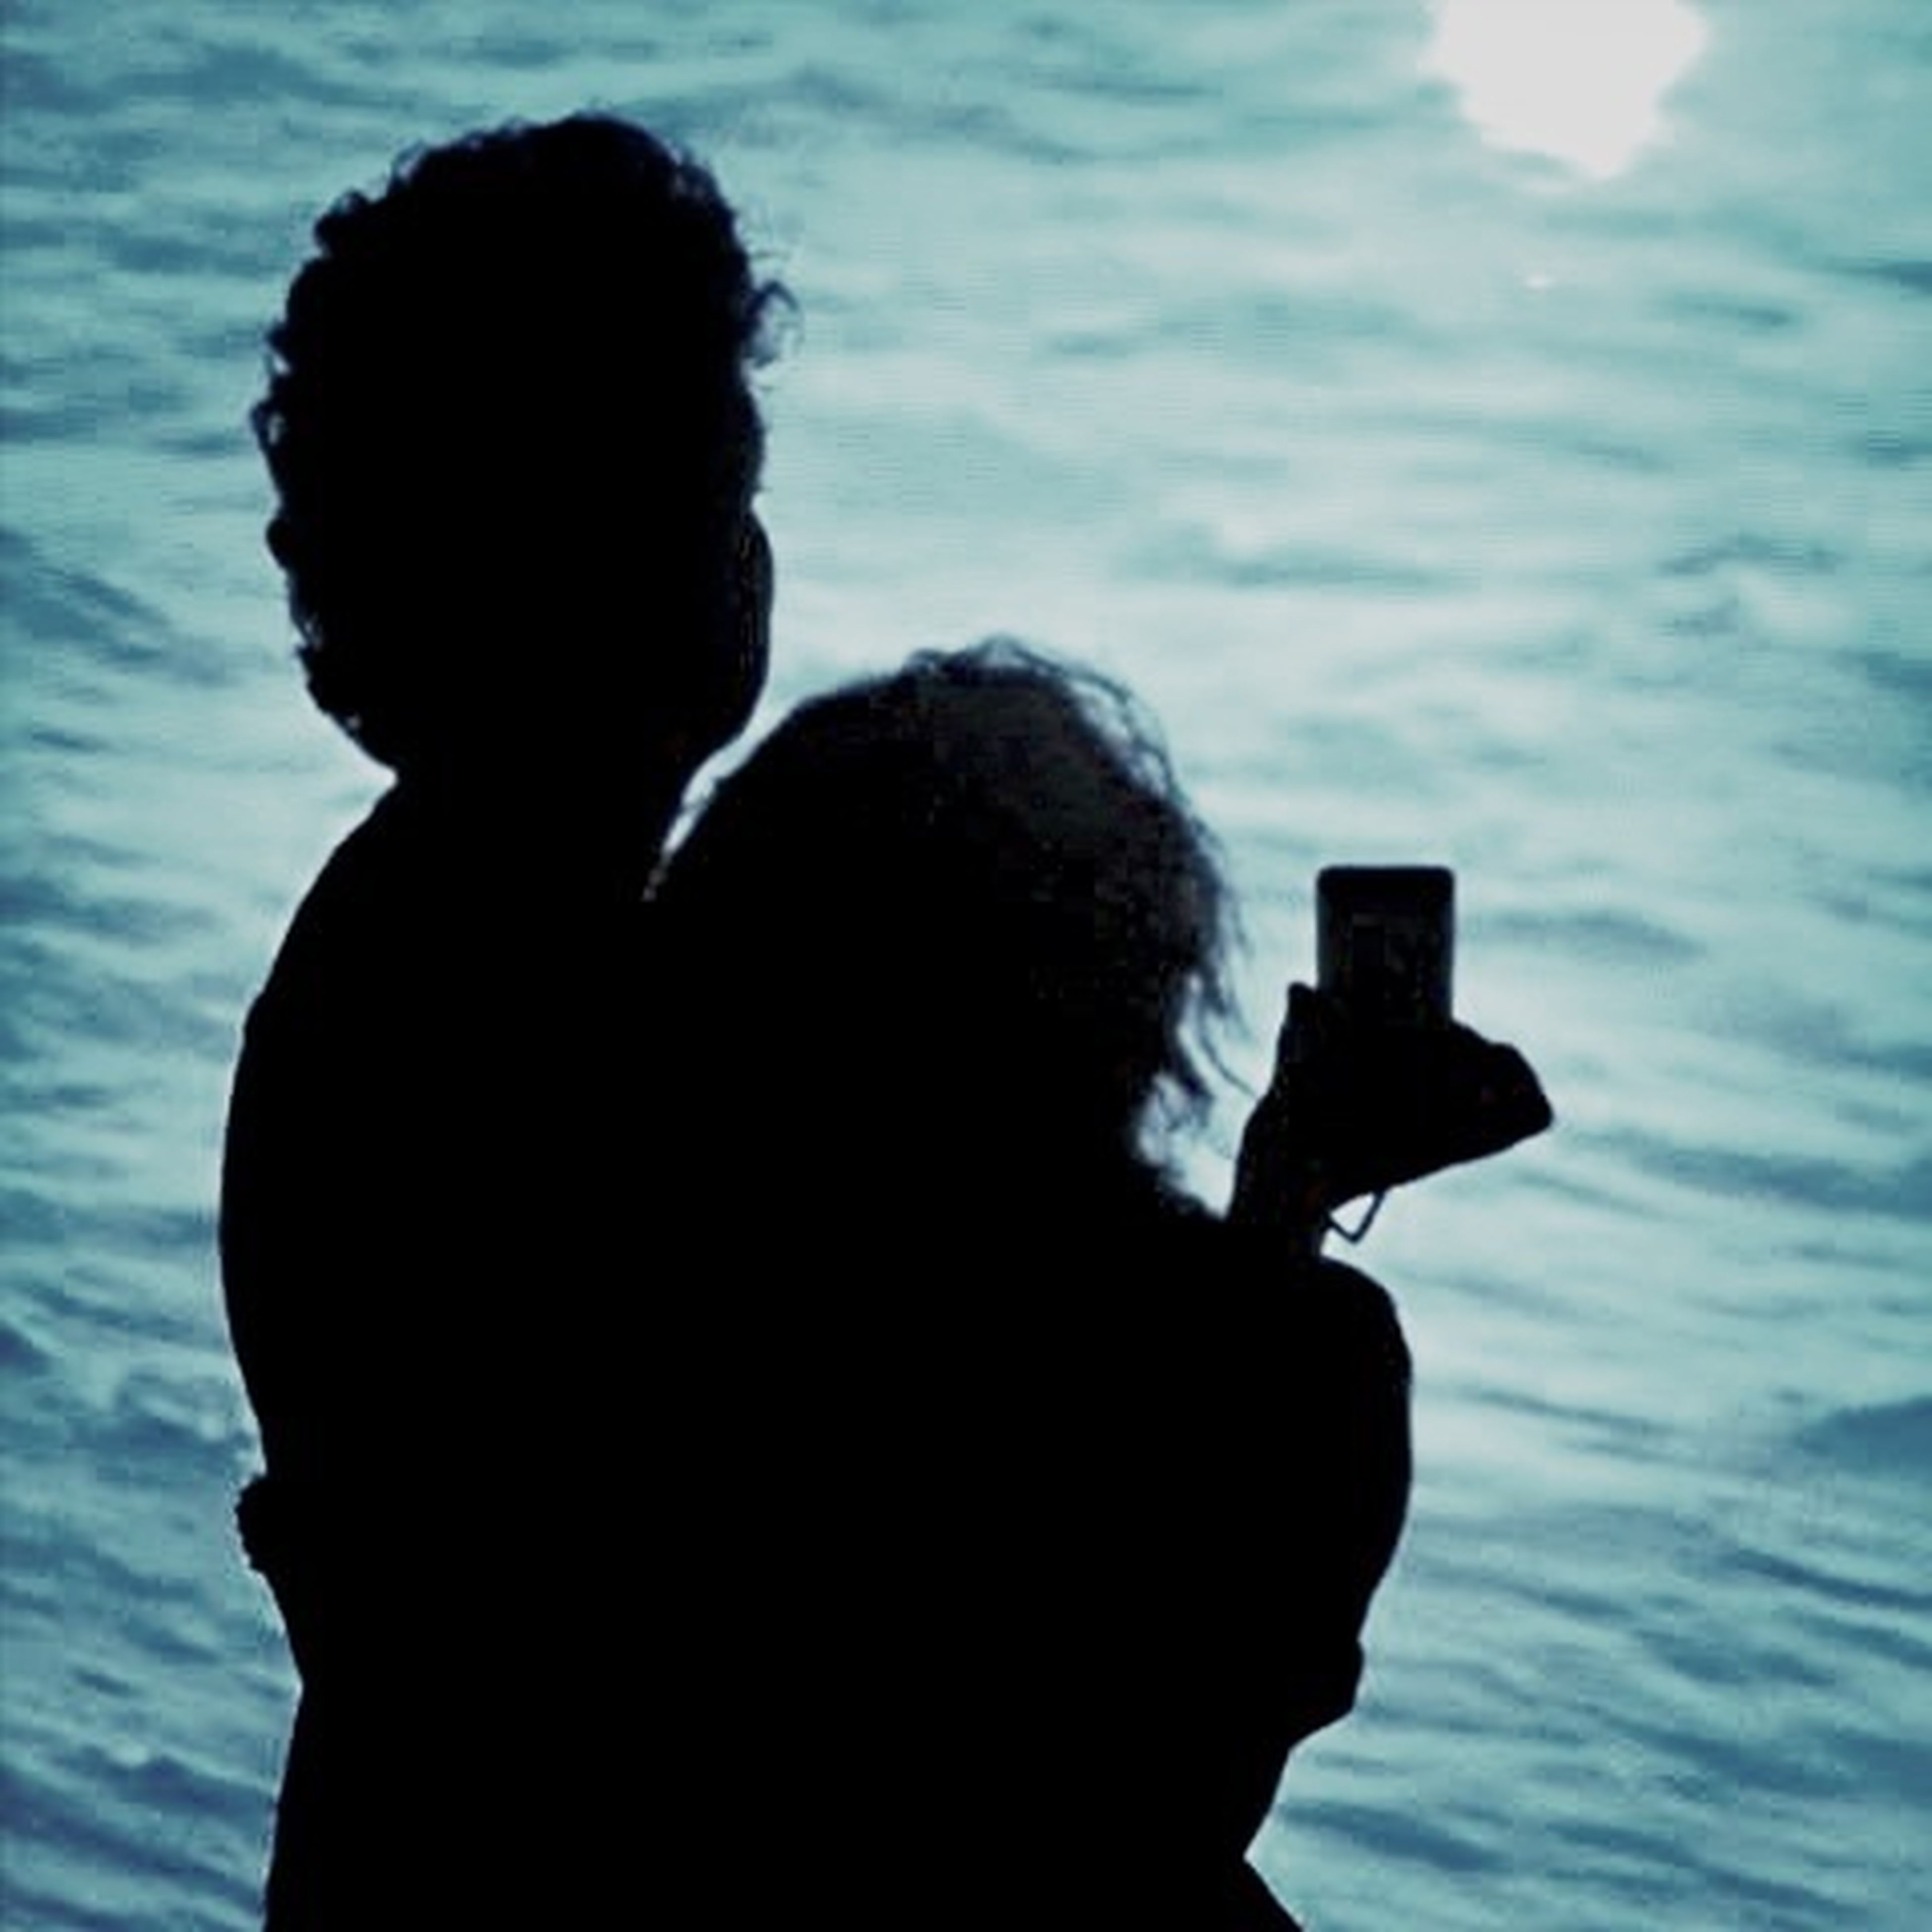 water, silhouette, men, lifestyles, leisure activity, sea, rear view, photography themes, photographing, focus on foreground, waist up, three quarter length, sky, technology, holding, headshot, camera - photographic equipment, standing